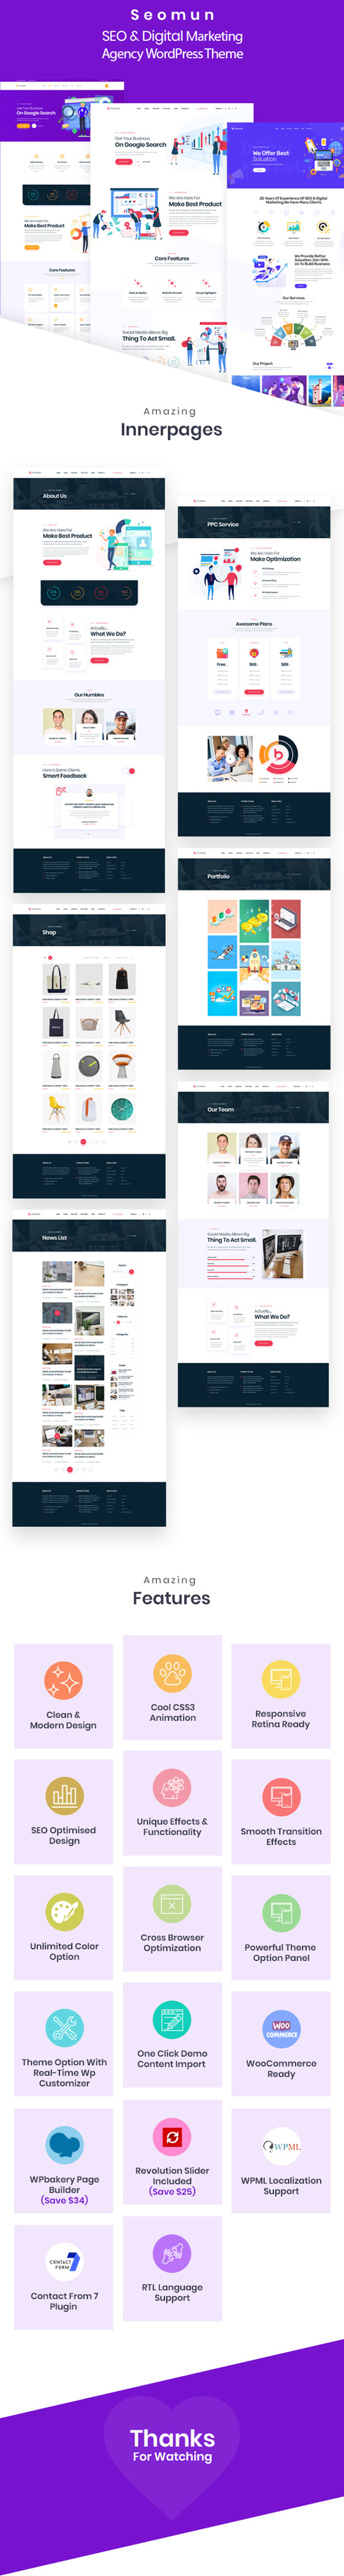 SEO & Digital Marketing Agency WordPress Theme